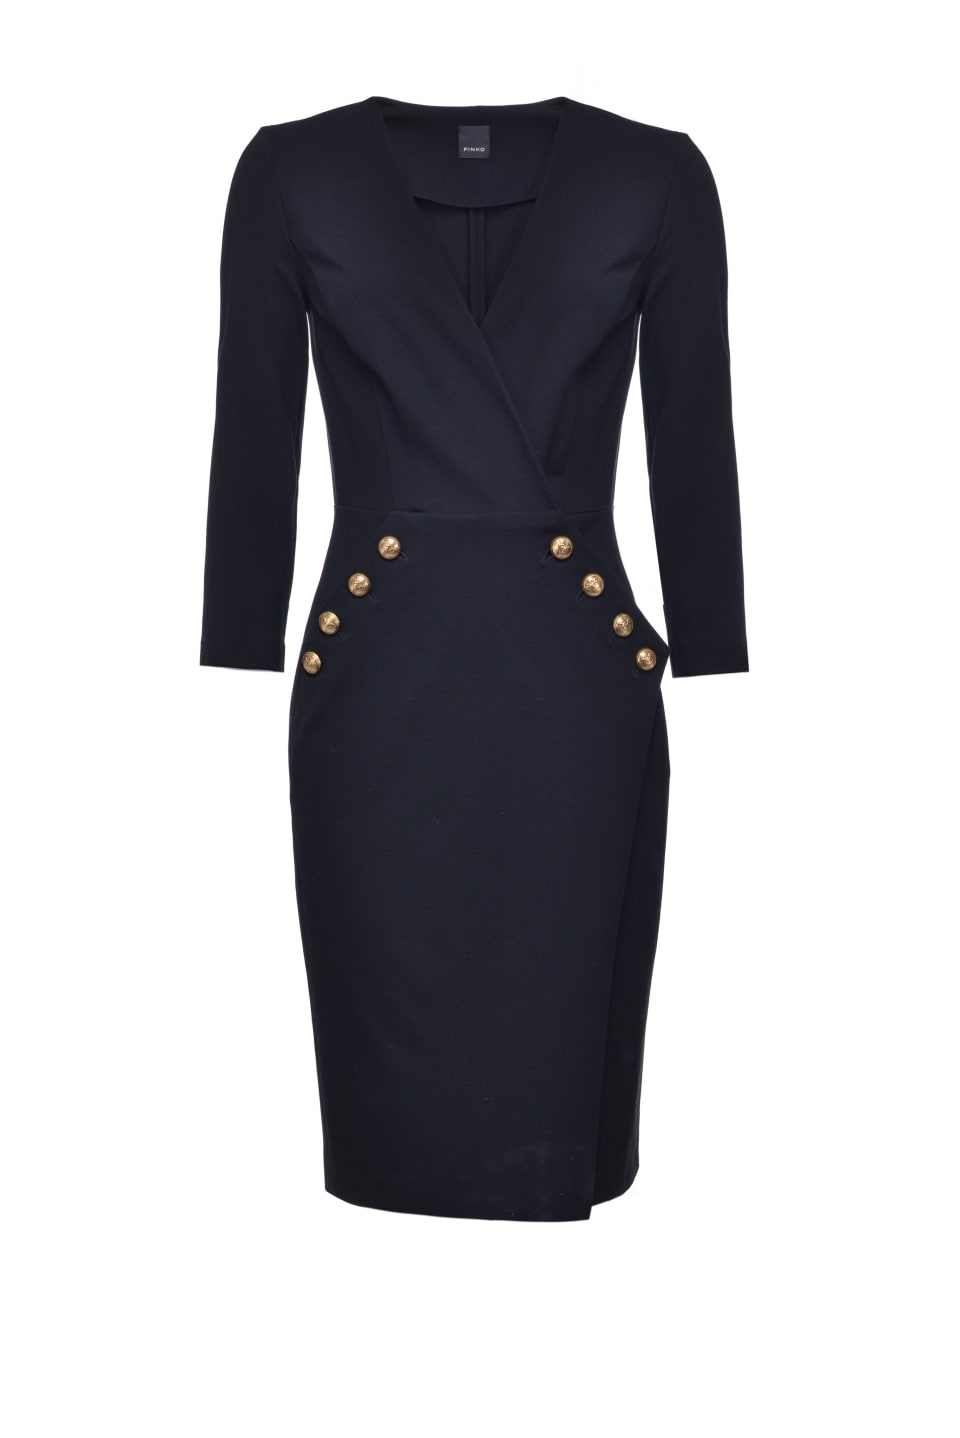 Sheath dress with gold buttons